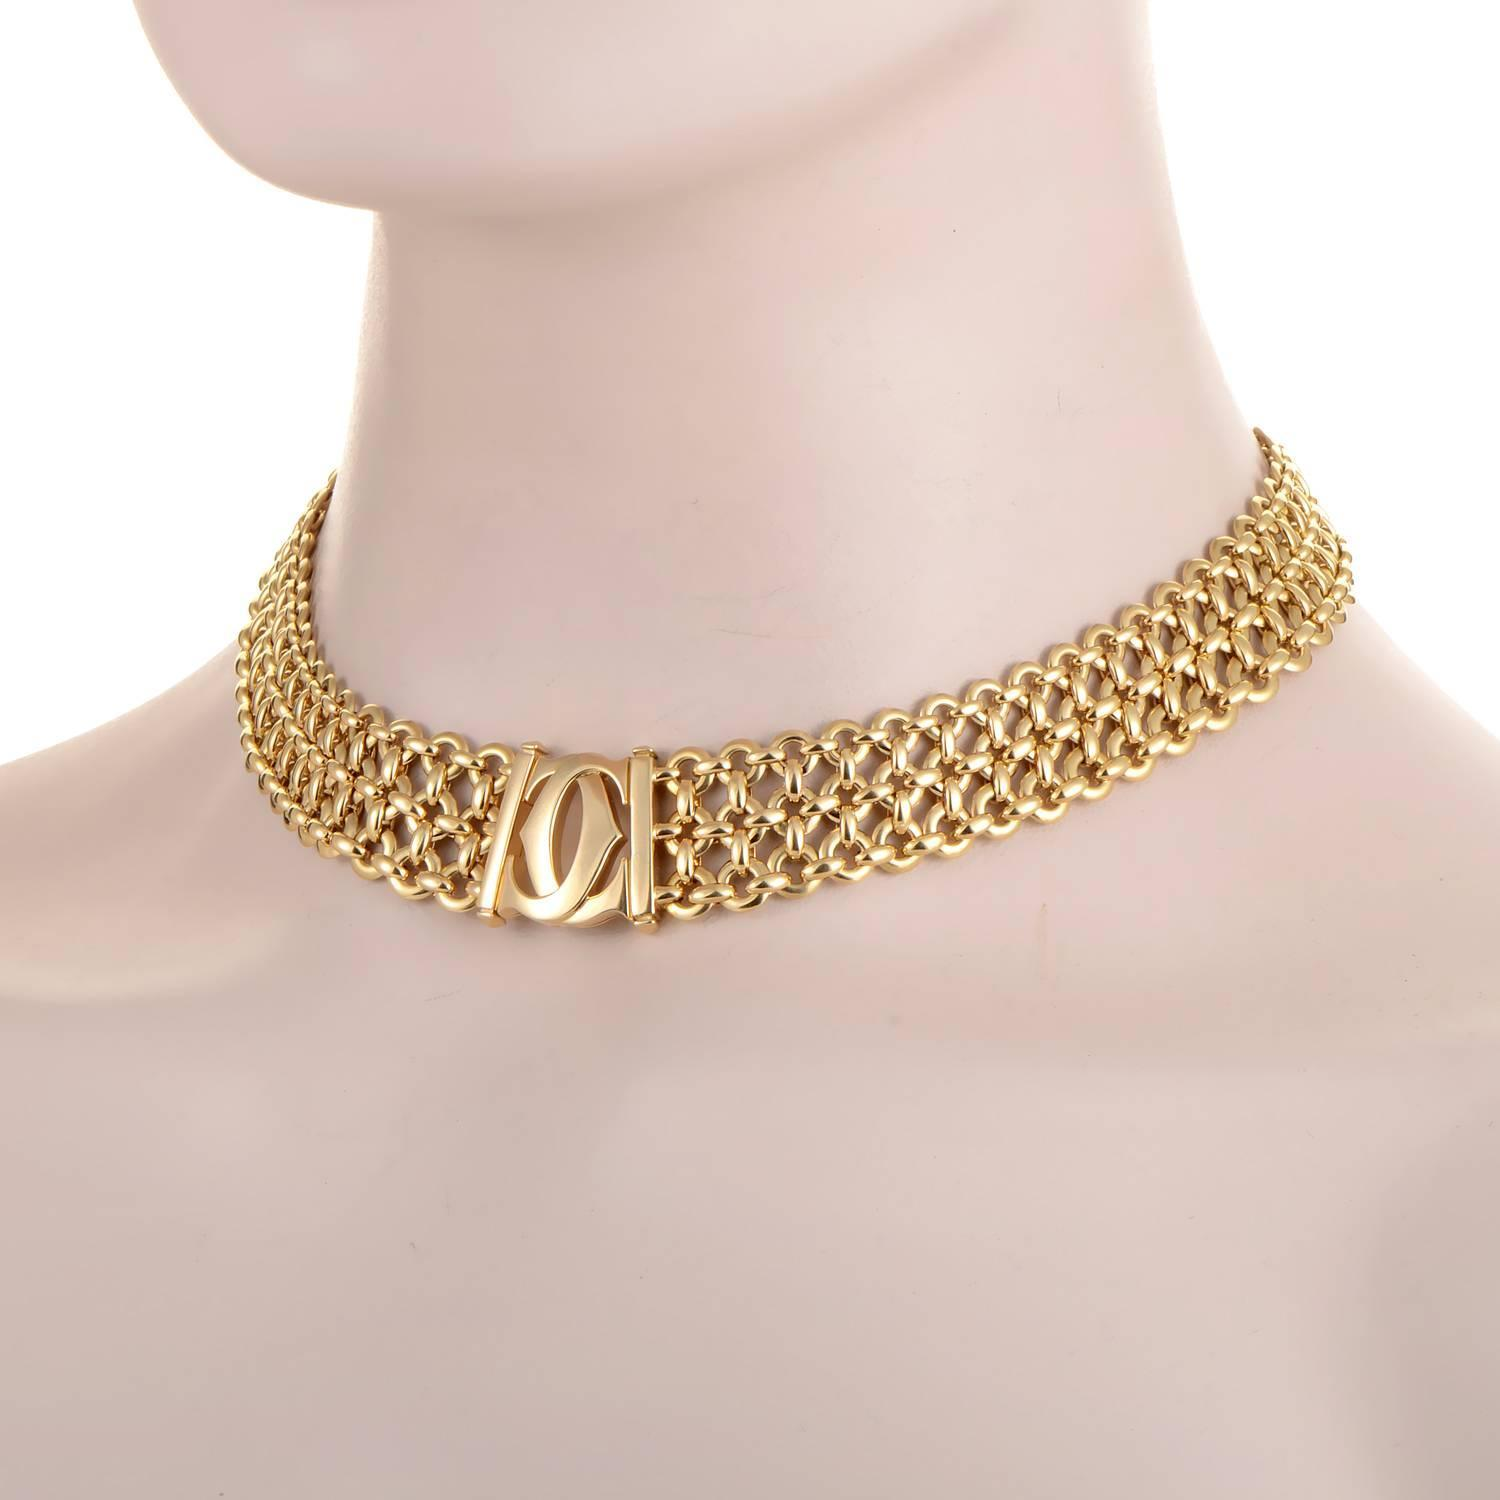 cartier gold choker necklace at 1stdibs. Black Bedroom Furniture Sets. Home Design Ideas